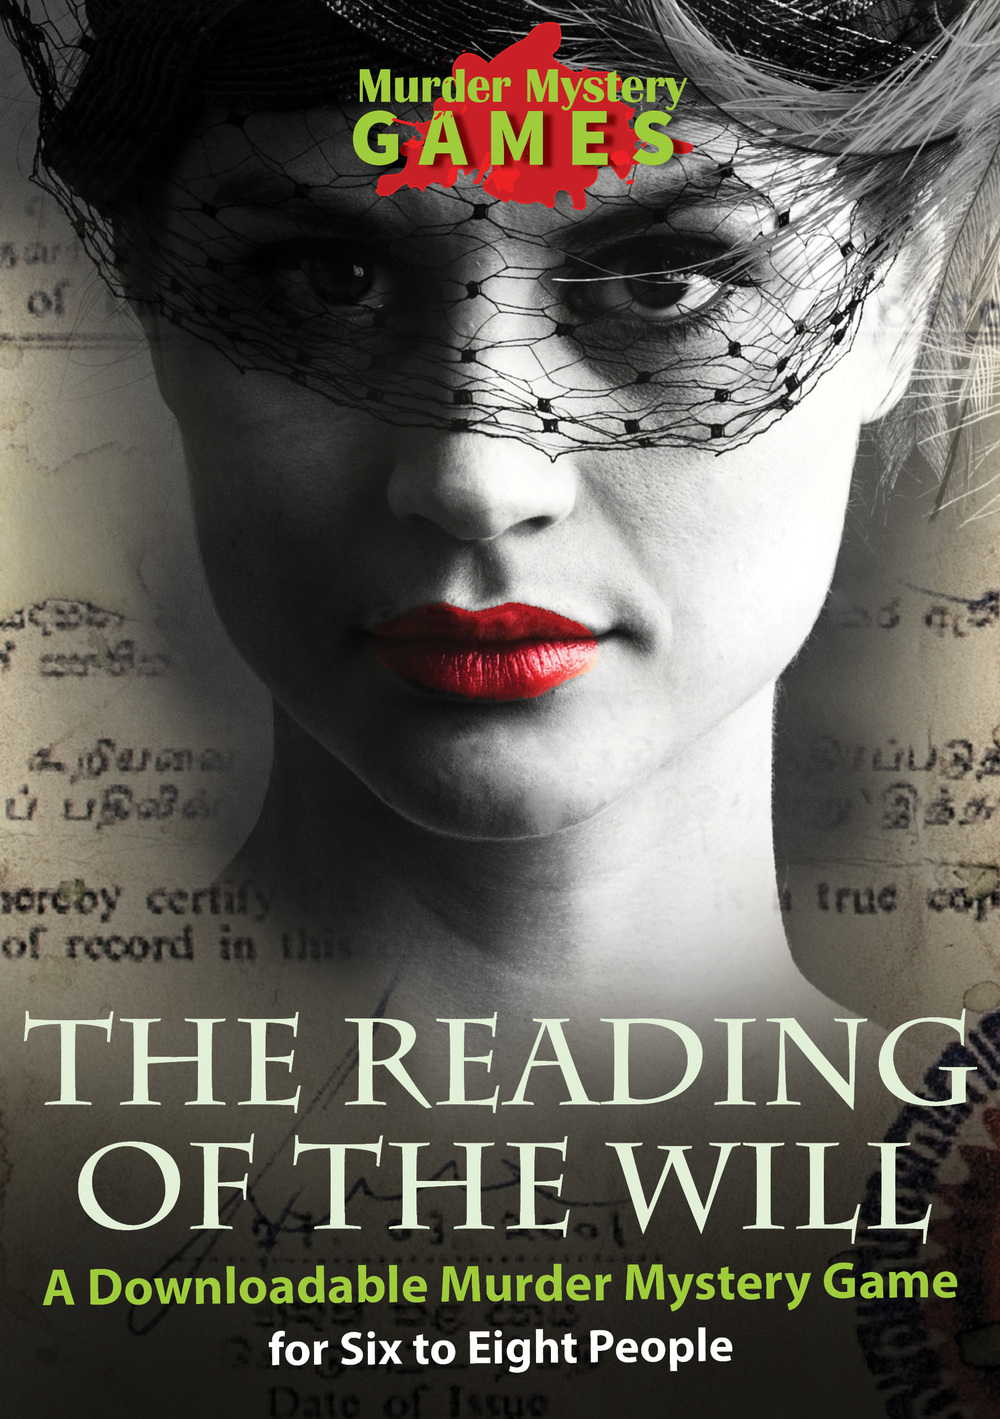 The Reading of The Will - A Downloadable, traditional Murder Mystery Game for Six to Eight People